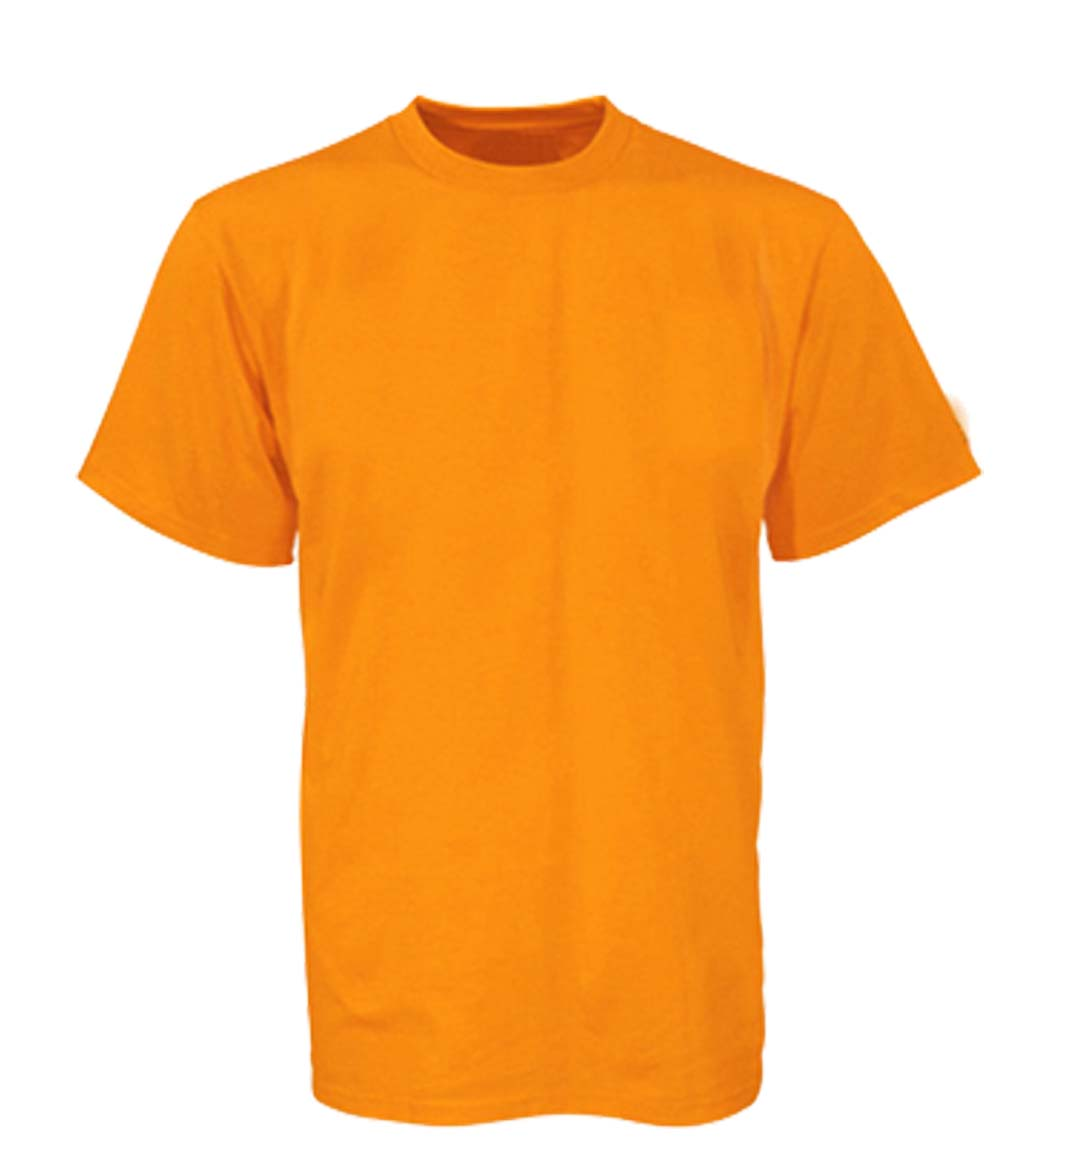 Download Free High-quality Blank T Shirt Png Transparent Images image #30278